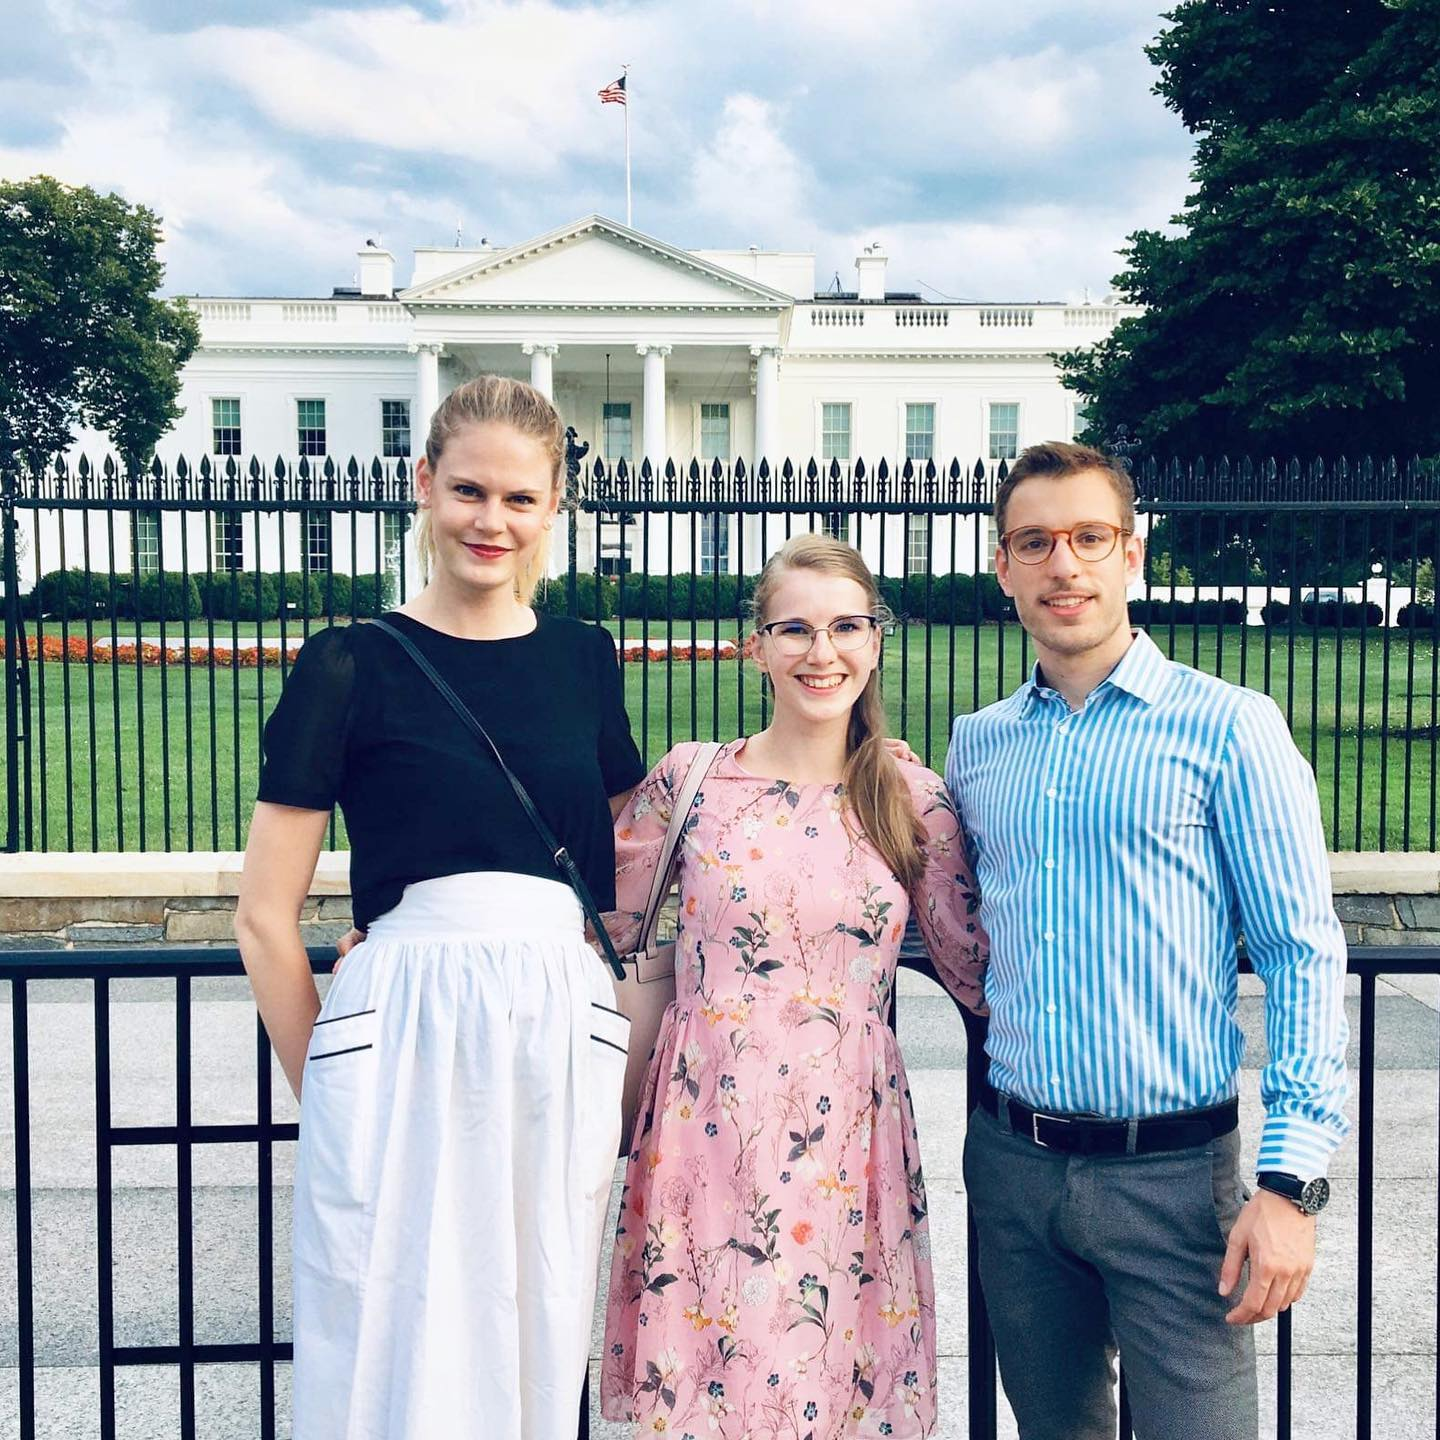 Call for Applications: 2020 Summer Széll Kálmán Public Policy Fellowship